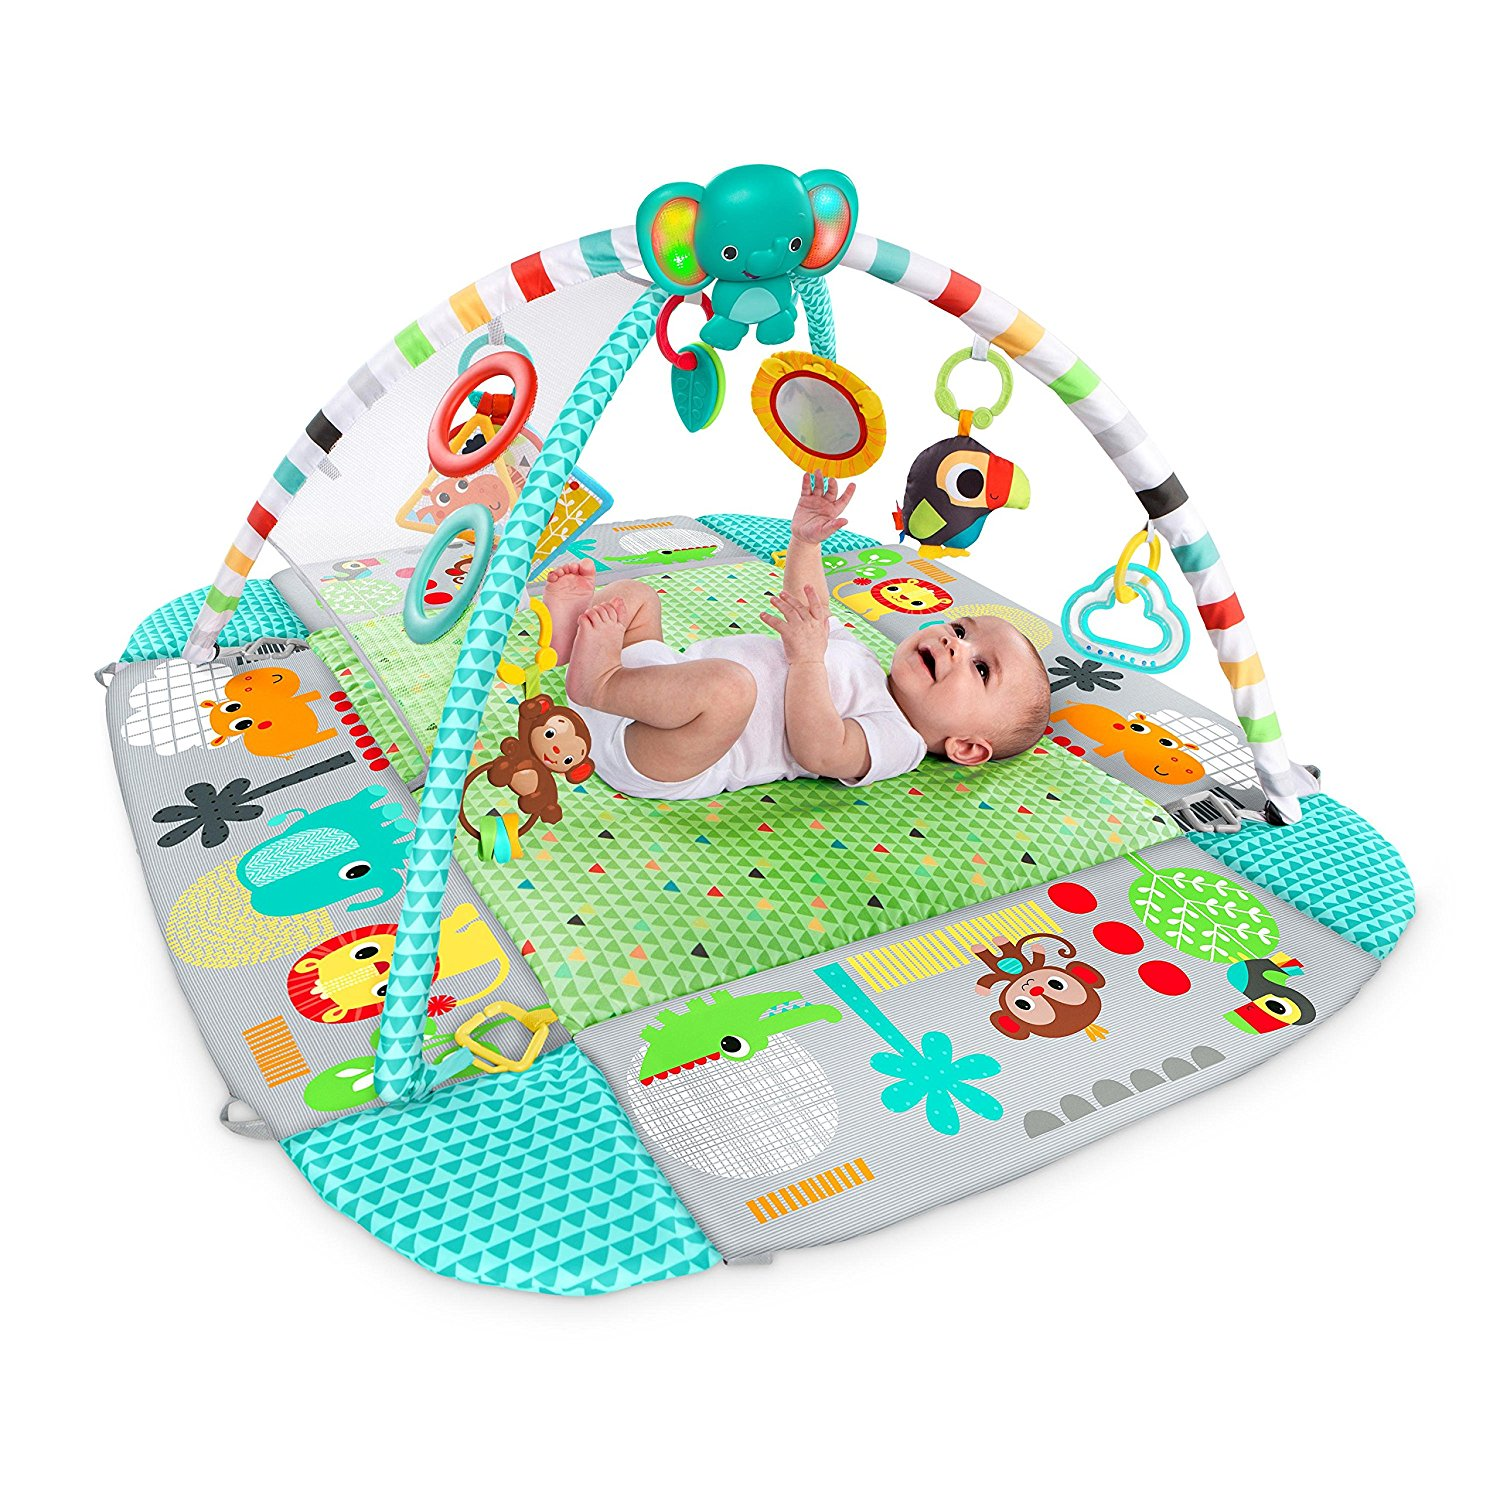 Bright Starts 5-in-1 Your Way Ball Play Activity Gym ...